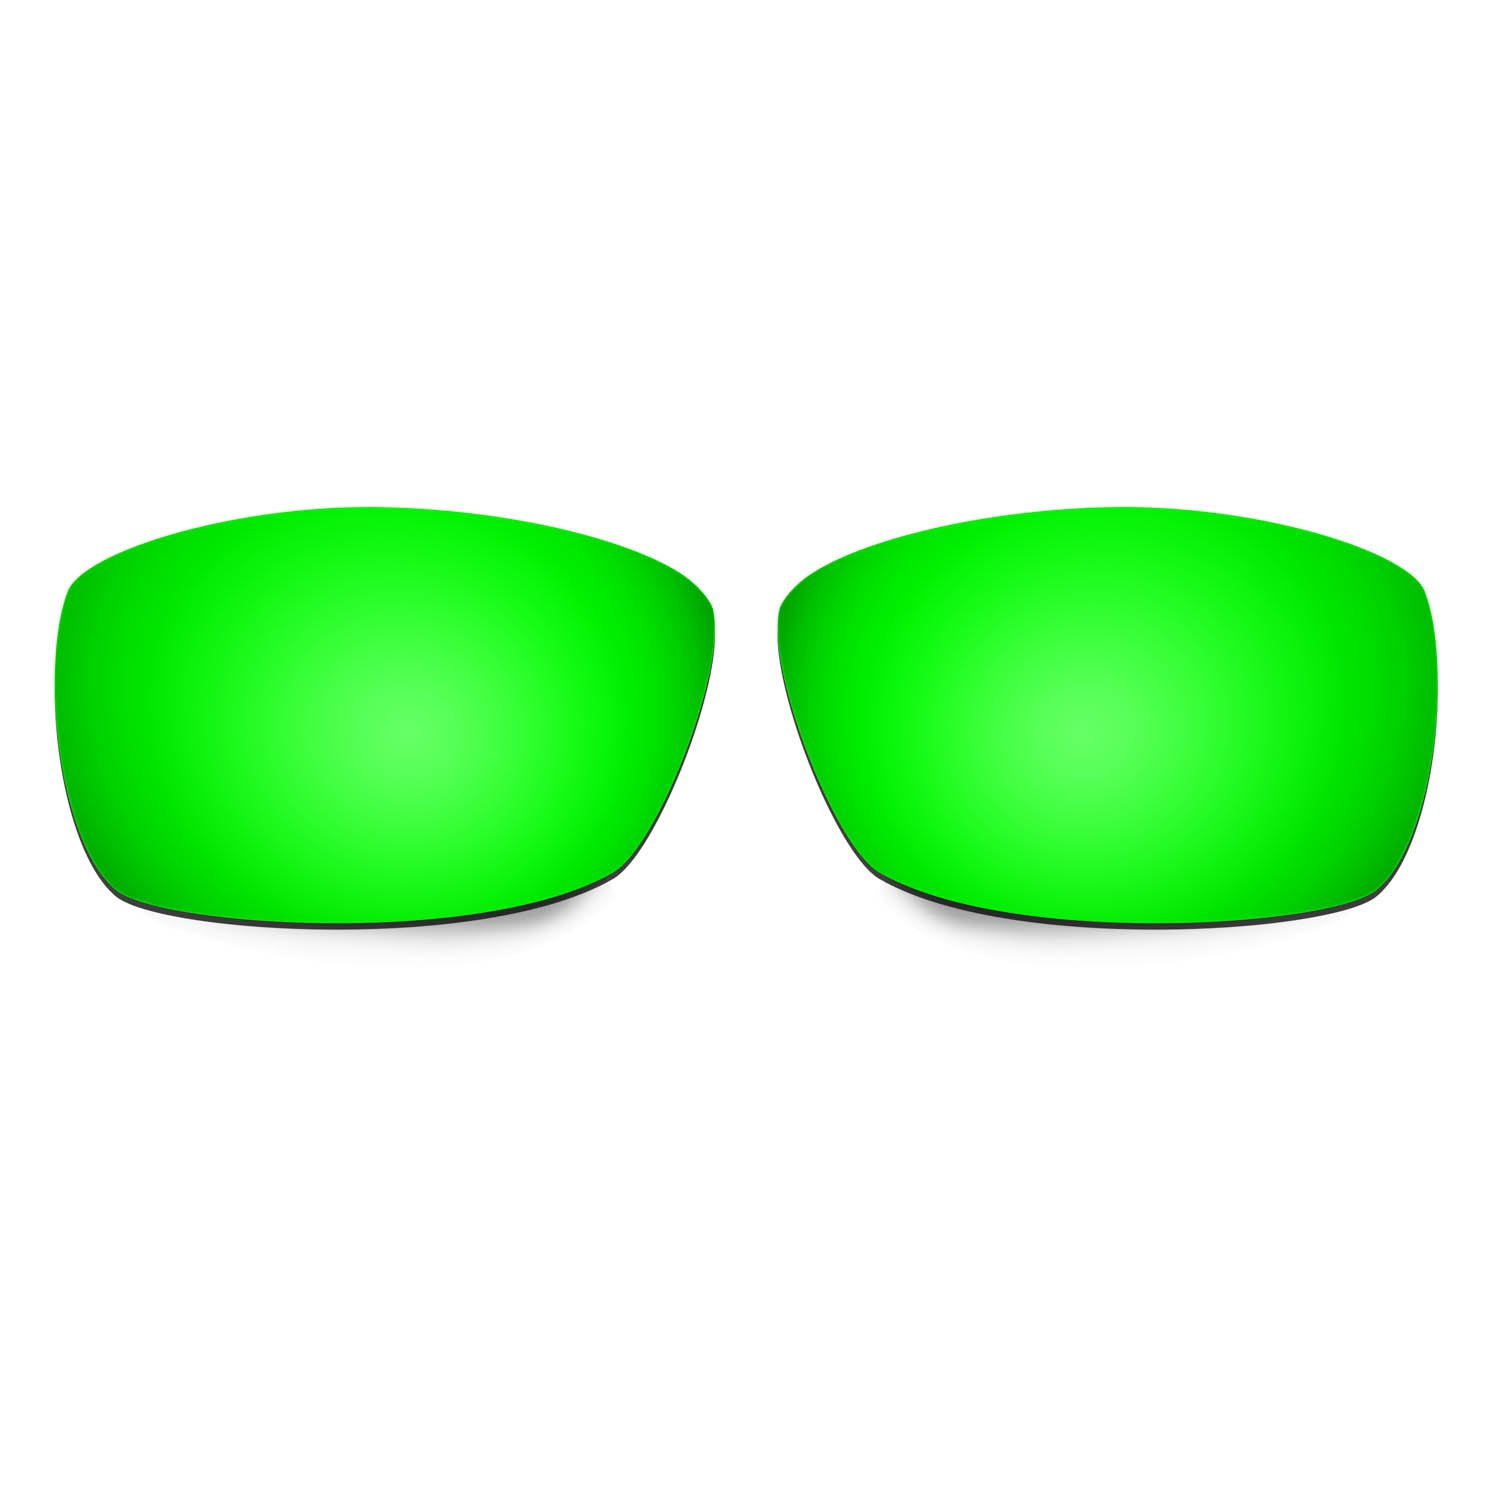 194aaaee58e57 Amazon.com  Hkuco Plus Mens Replacement Lenses For Costa Corbina - 2 pair   Clothing